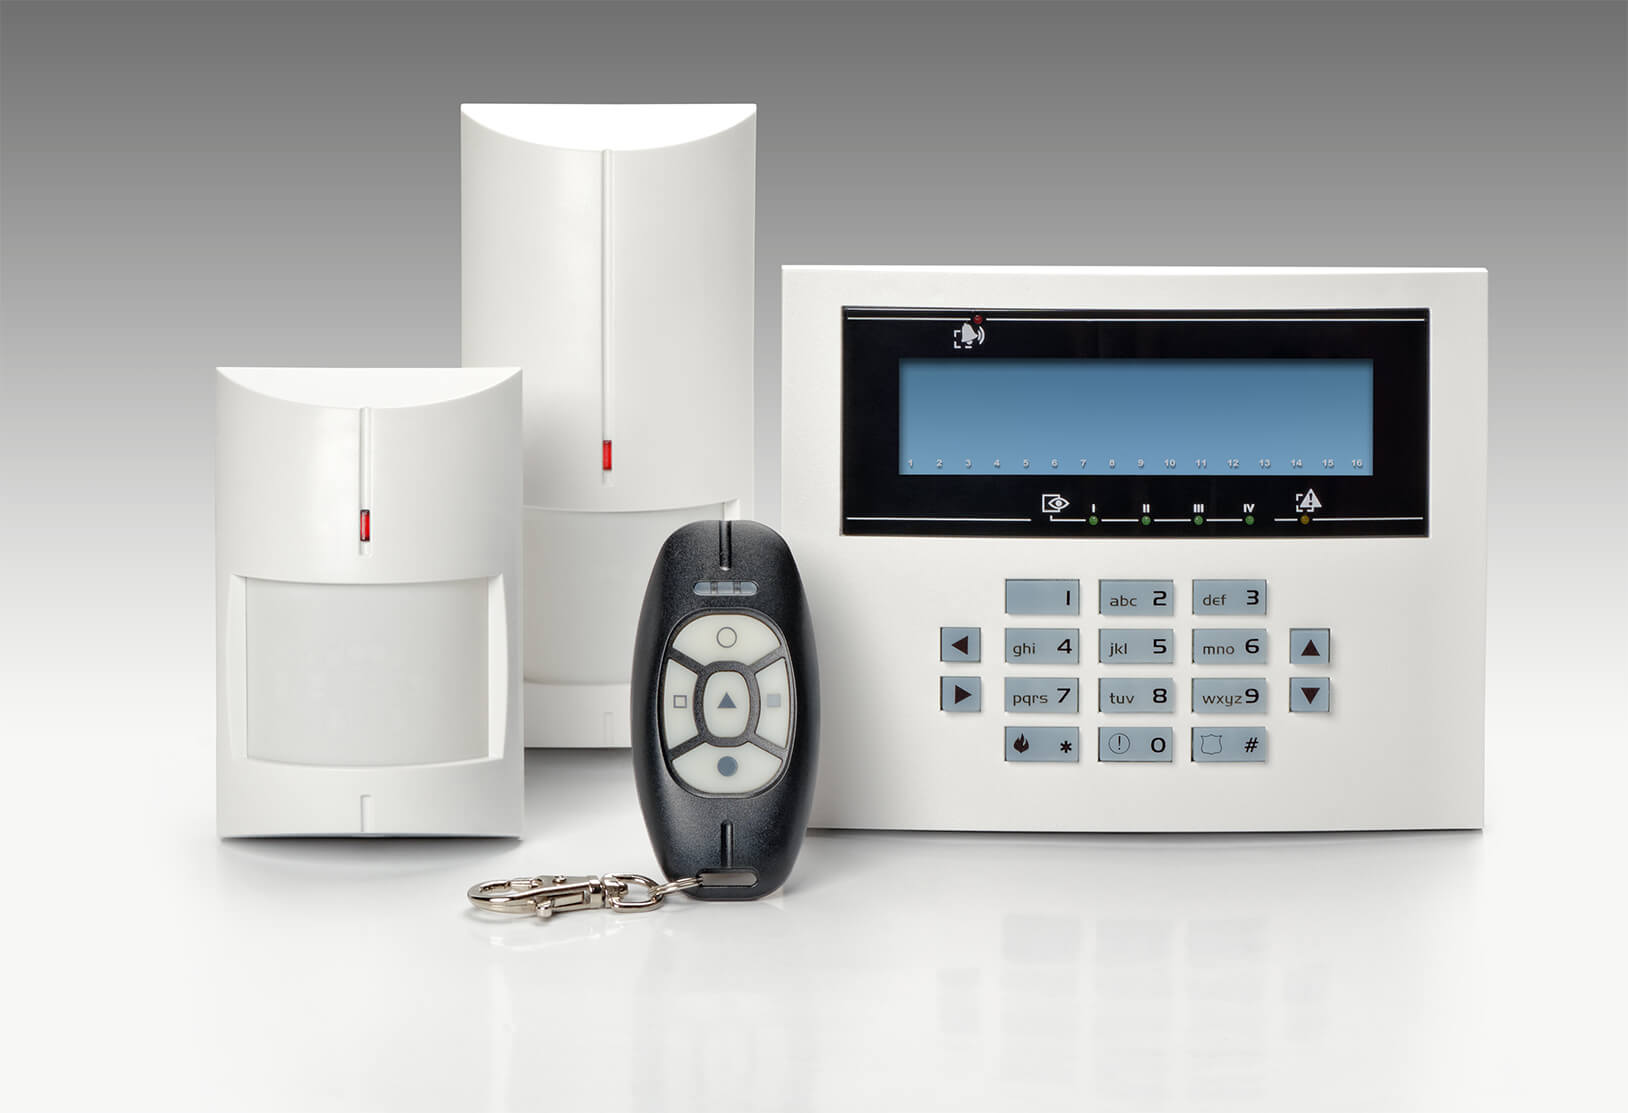 business NACOSS Approved {alarms} In East Ham E7 - Local East Ham E7 security company.Call 02078872244 - Dedicated to Safety & Security.Trusted by 1000's in East Ham E7